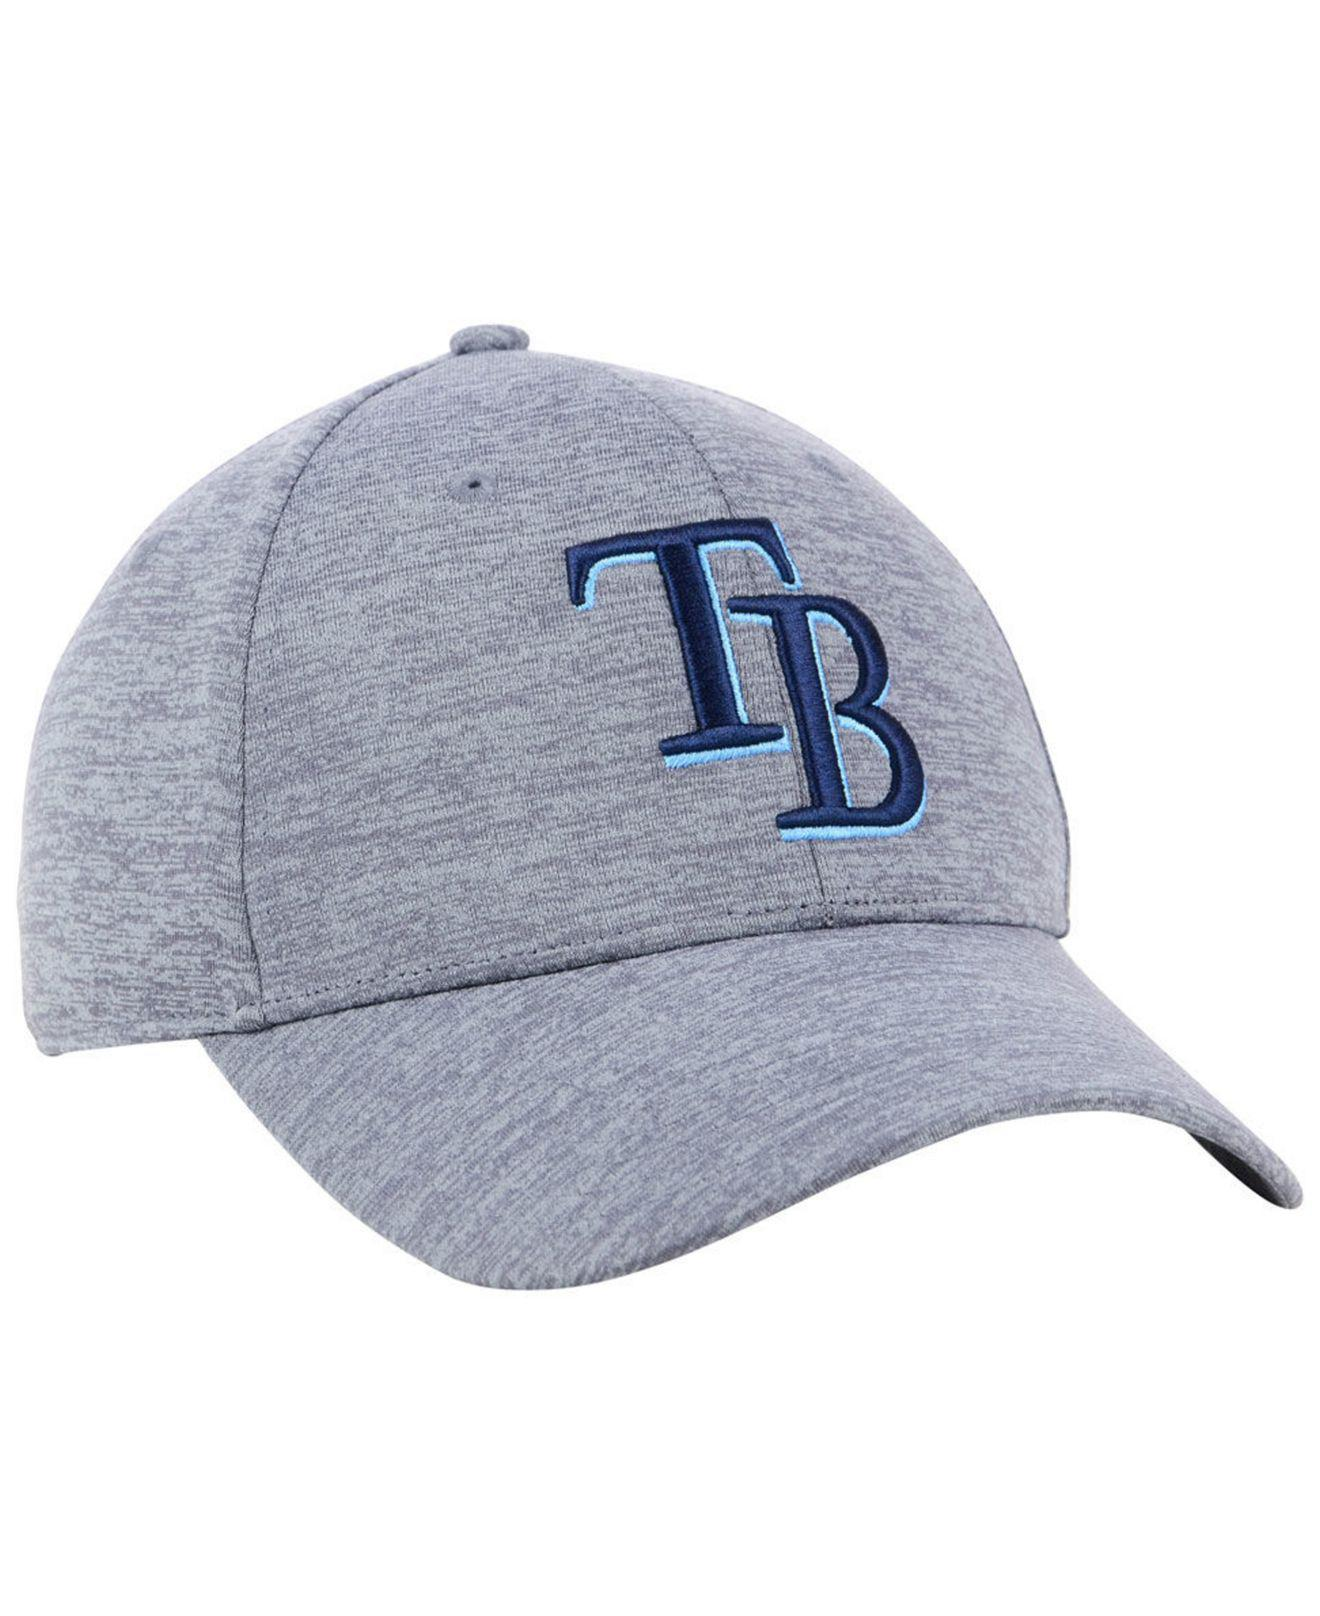 newest 656e3 26f40 ... discount lyst under armour tampa bay rays twist closer cap for men  ff193 7ec64